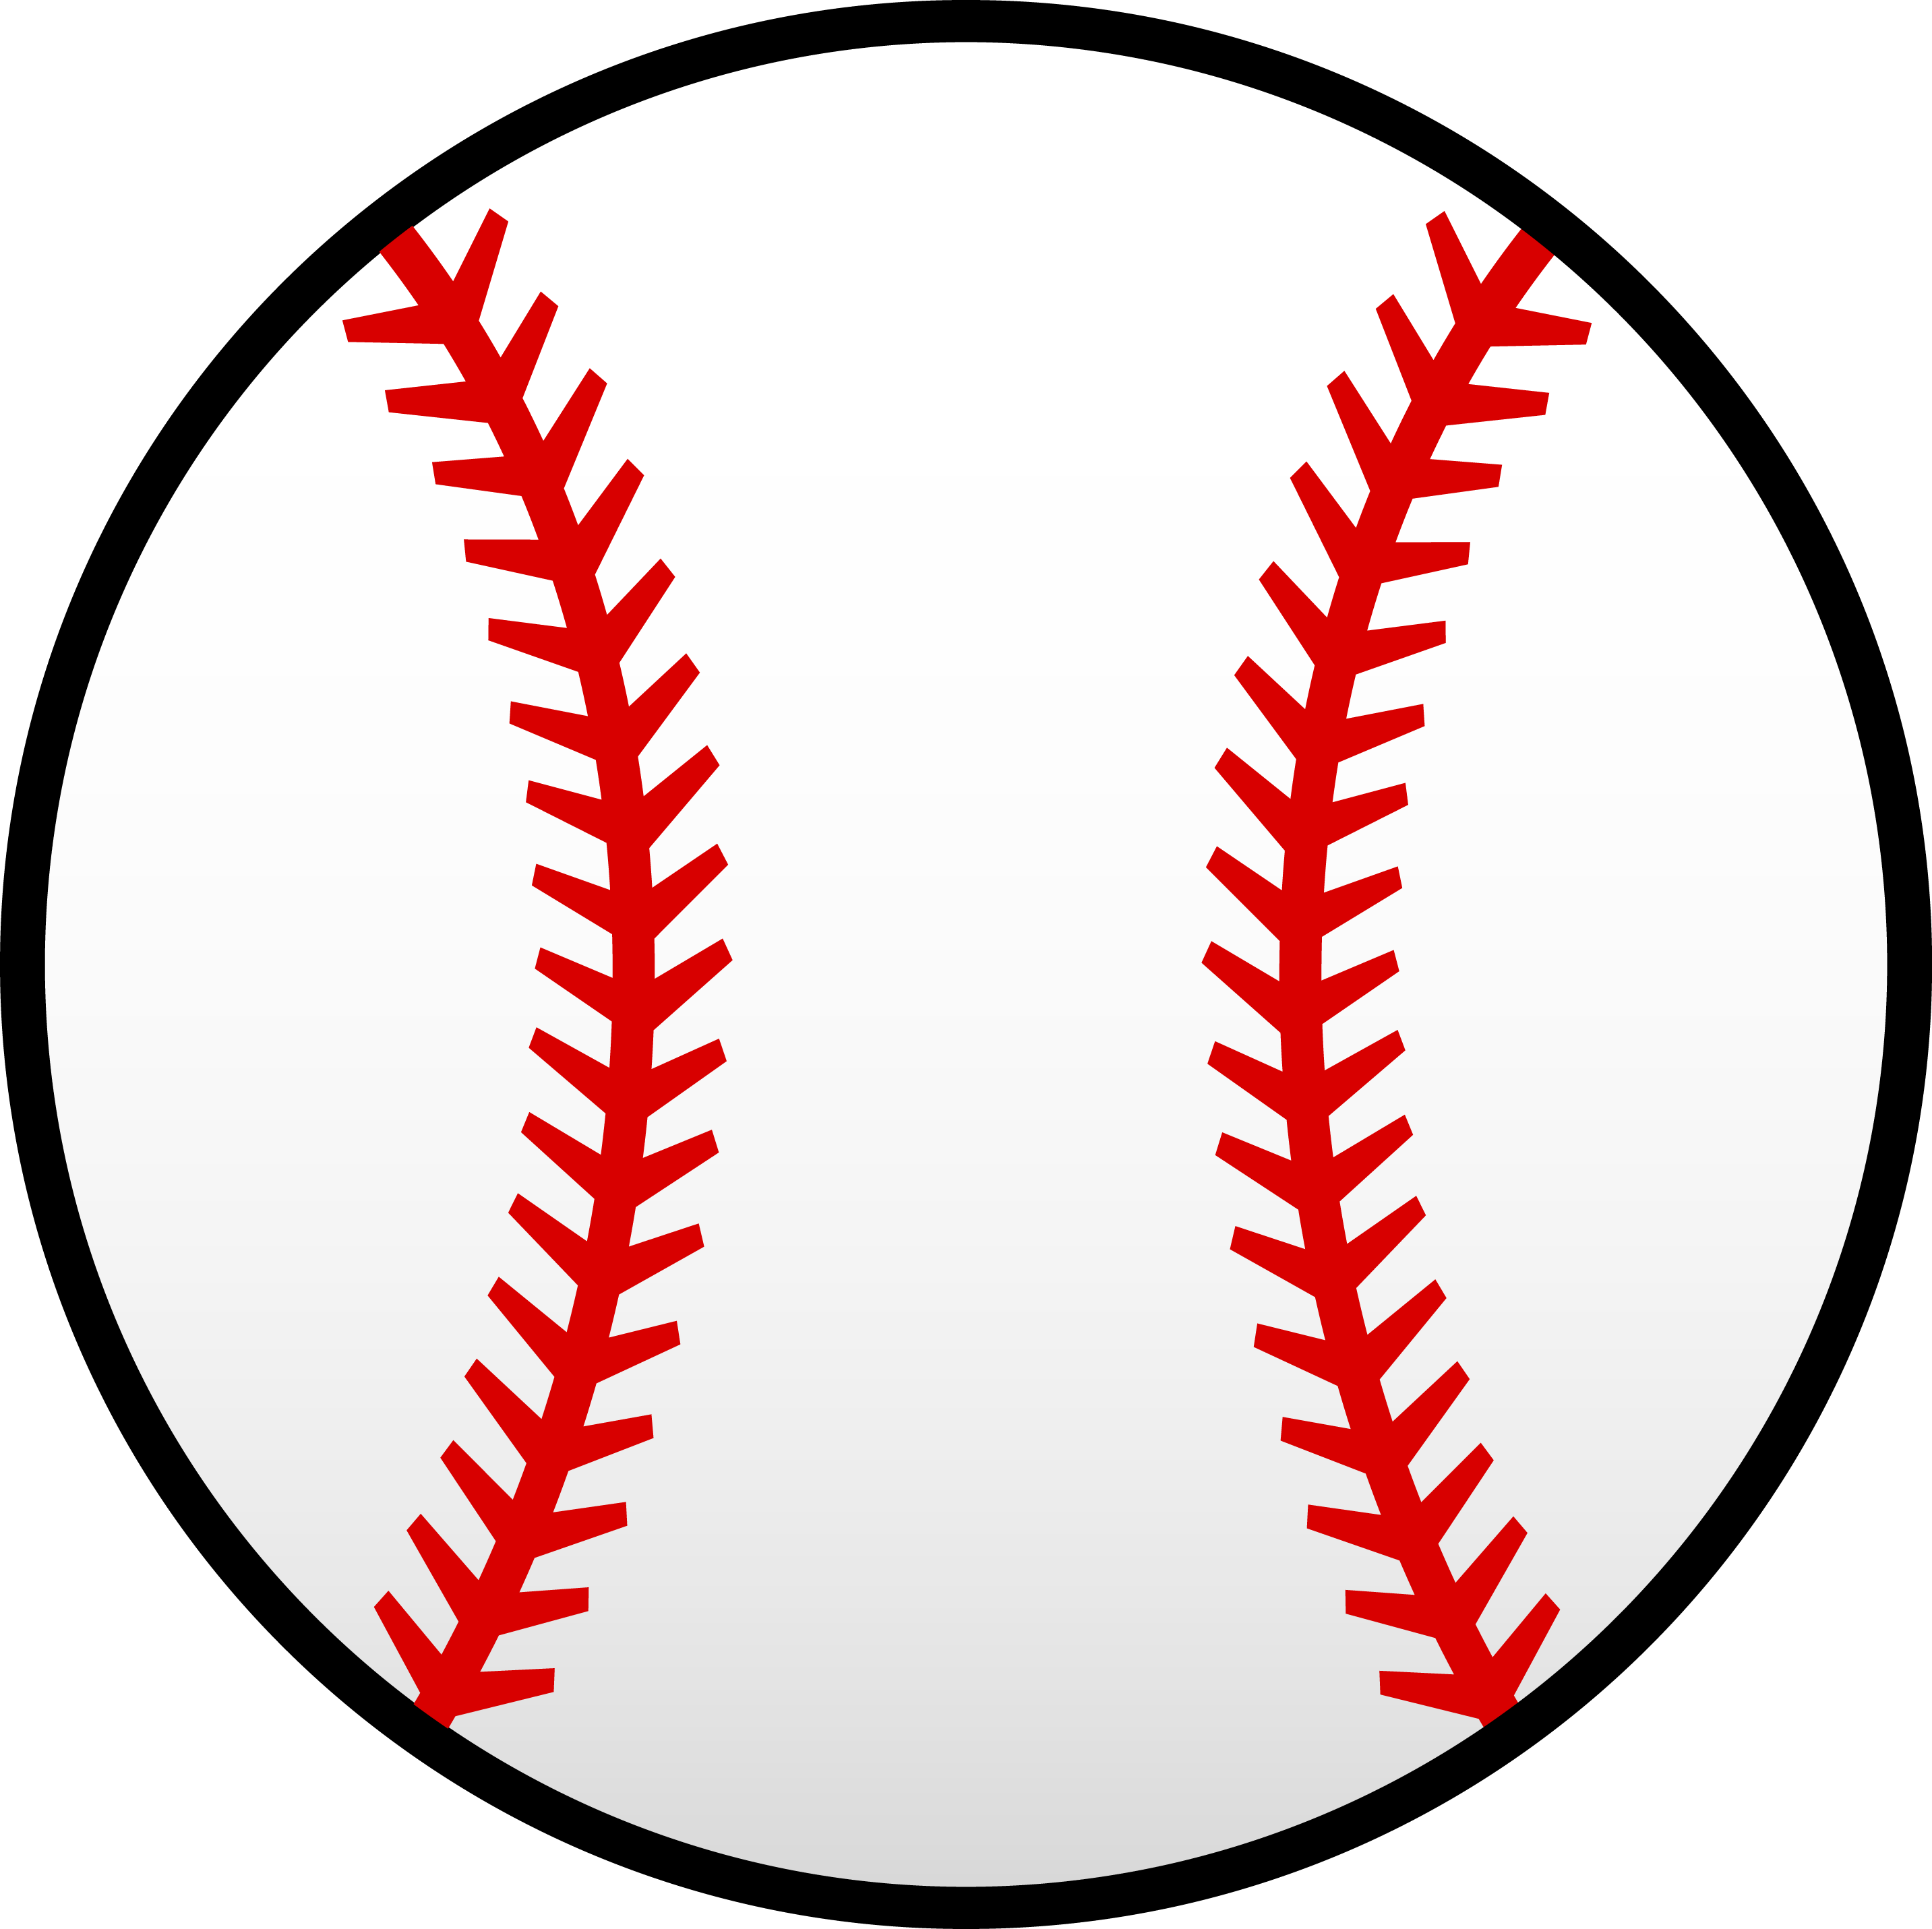 Free baseball clip art clipart images 2